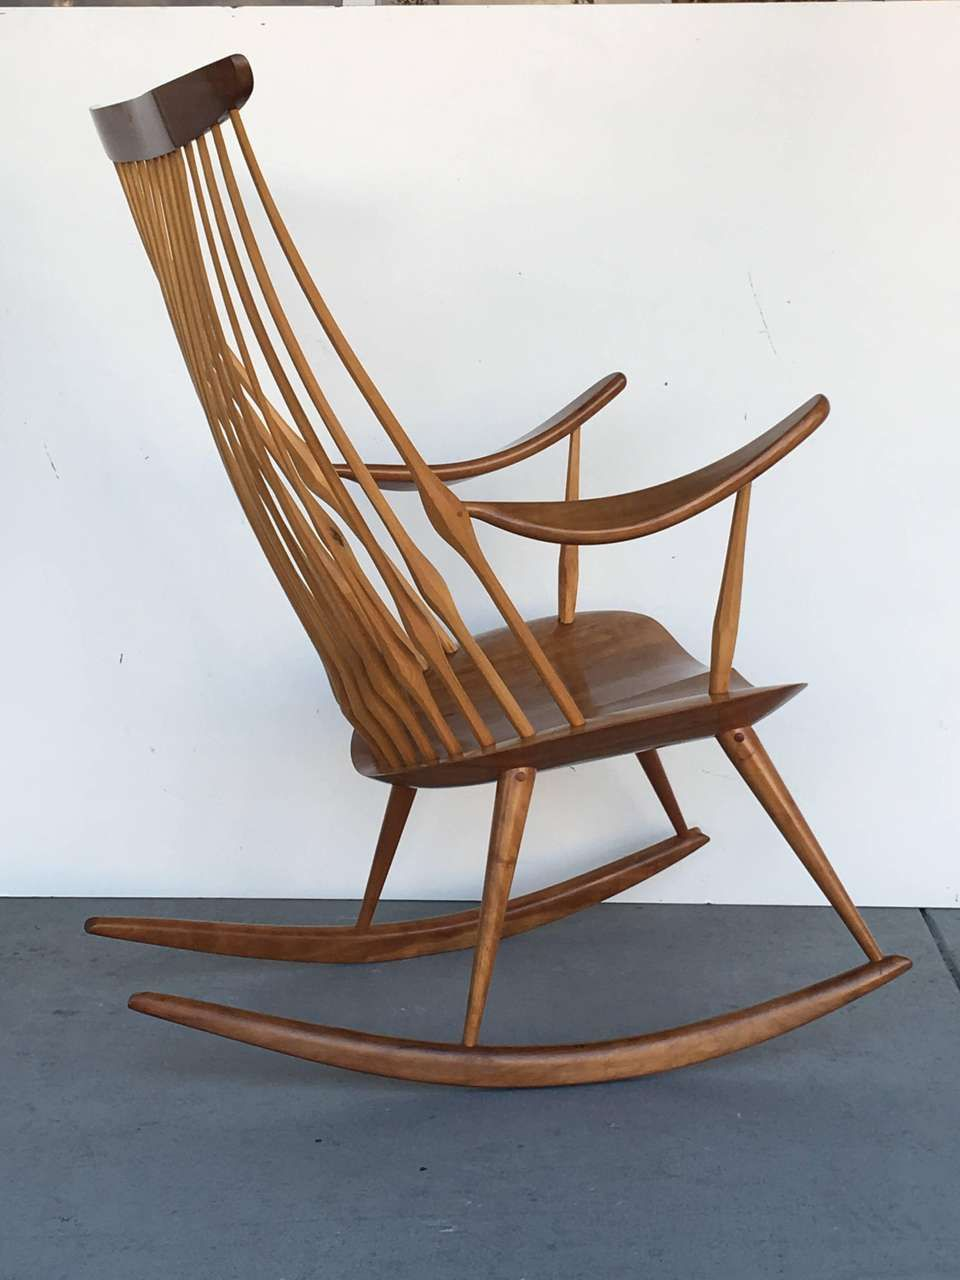 View This Item And Discover Similar Rocking Chairs For At 1stdibs Most Comfortable Chair Beautifully Handcrafted A Work Of Art By Any